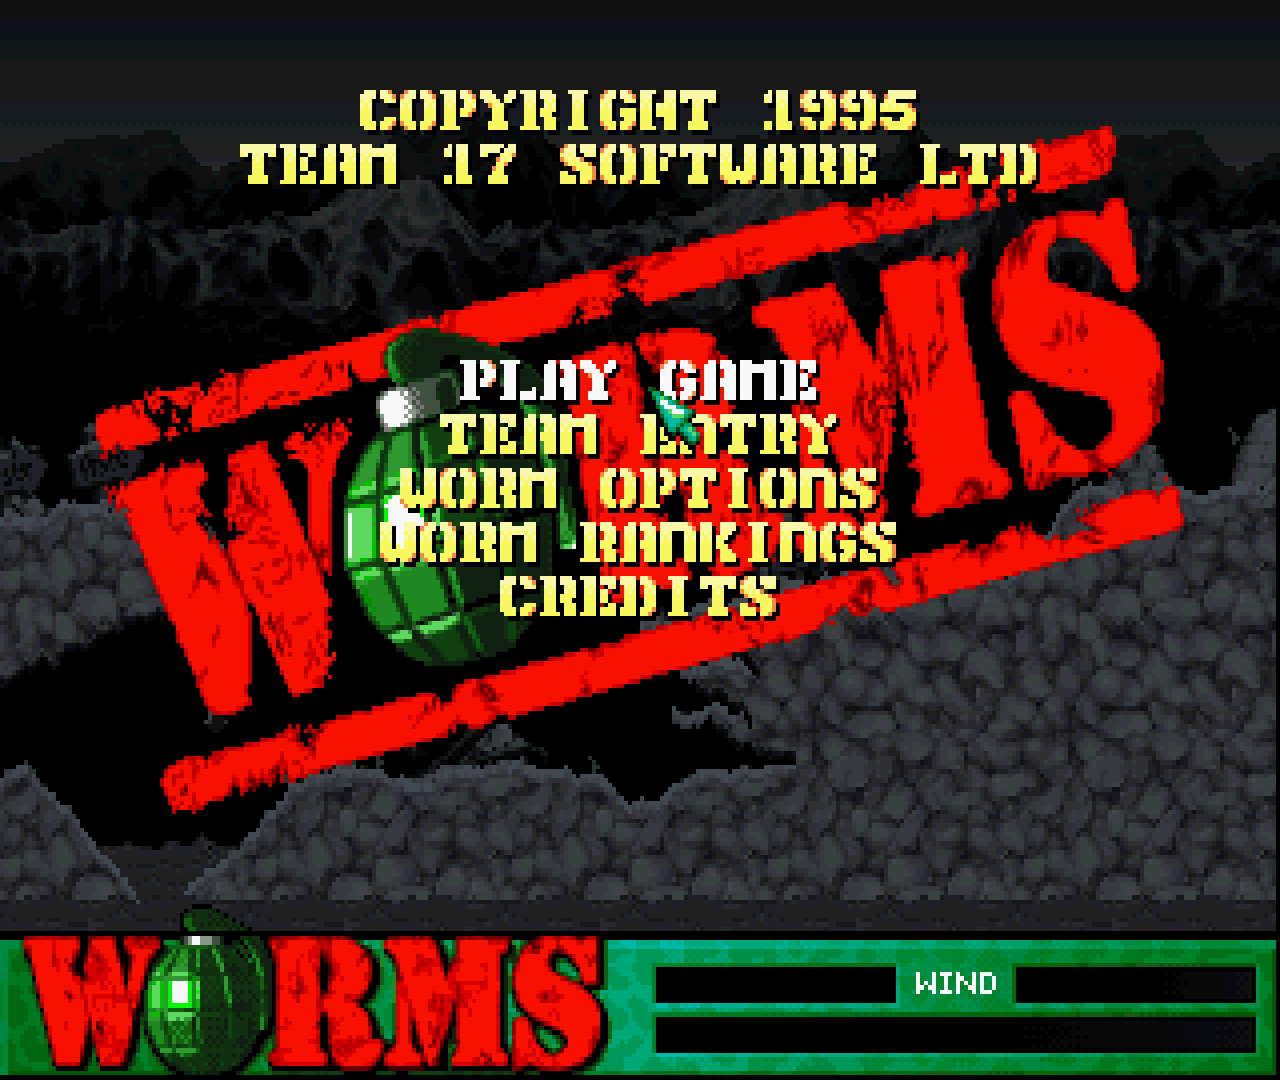 Figure 35 - Worms Title Screen on the Sega Saturn